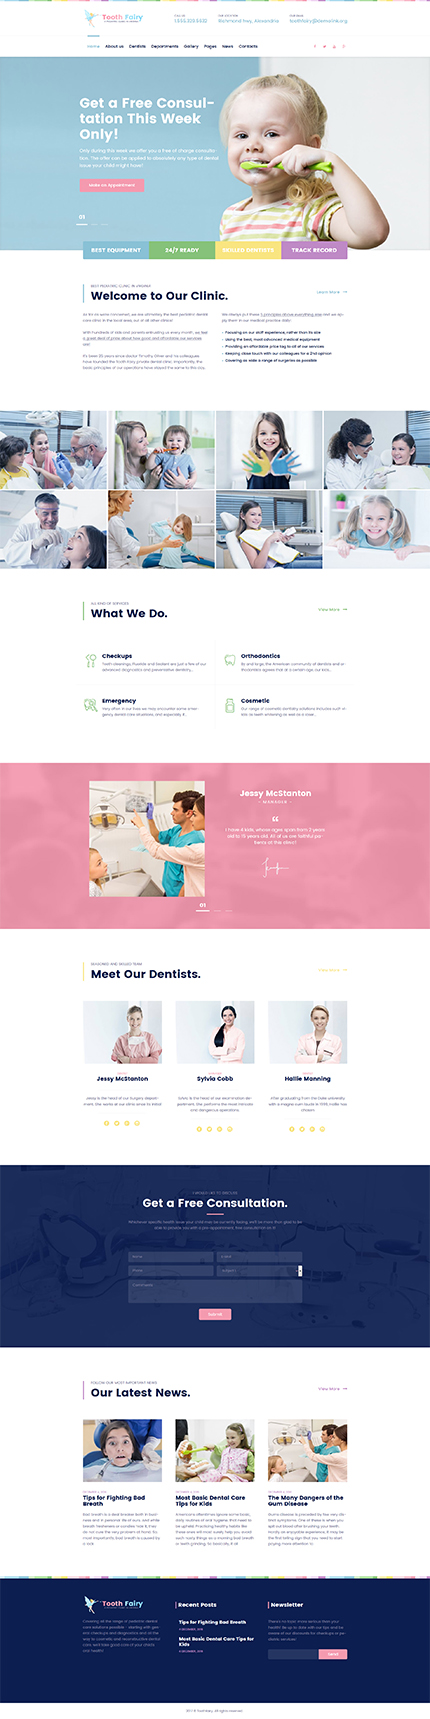 Medical Most Popular website inspirations at your coffee break? Browse for more WordPress #templates! // Regular price: $69 // Sources available:.PHP, This theme is widgetized #Medical #Most Popular #WordPress